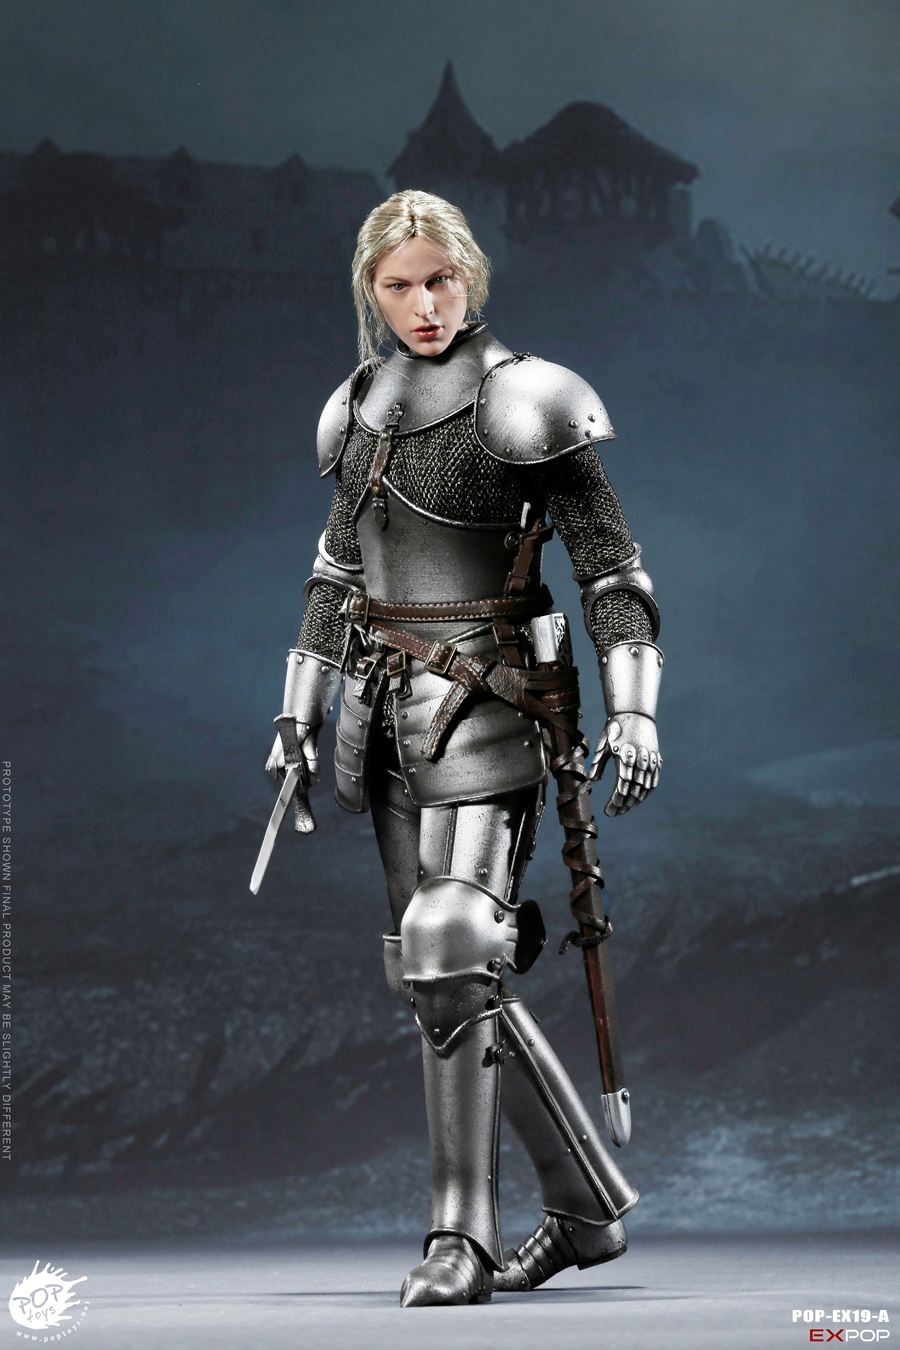 knight - NEW PRODUCT: POPTOYS New Products: 1/6 St. Knights - Assault Edition & Triumph Edition & Iron Armor (POP-EX19 ABC) 248